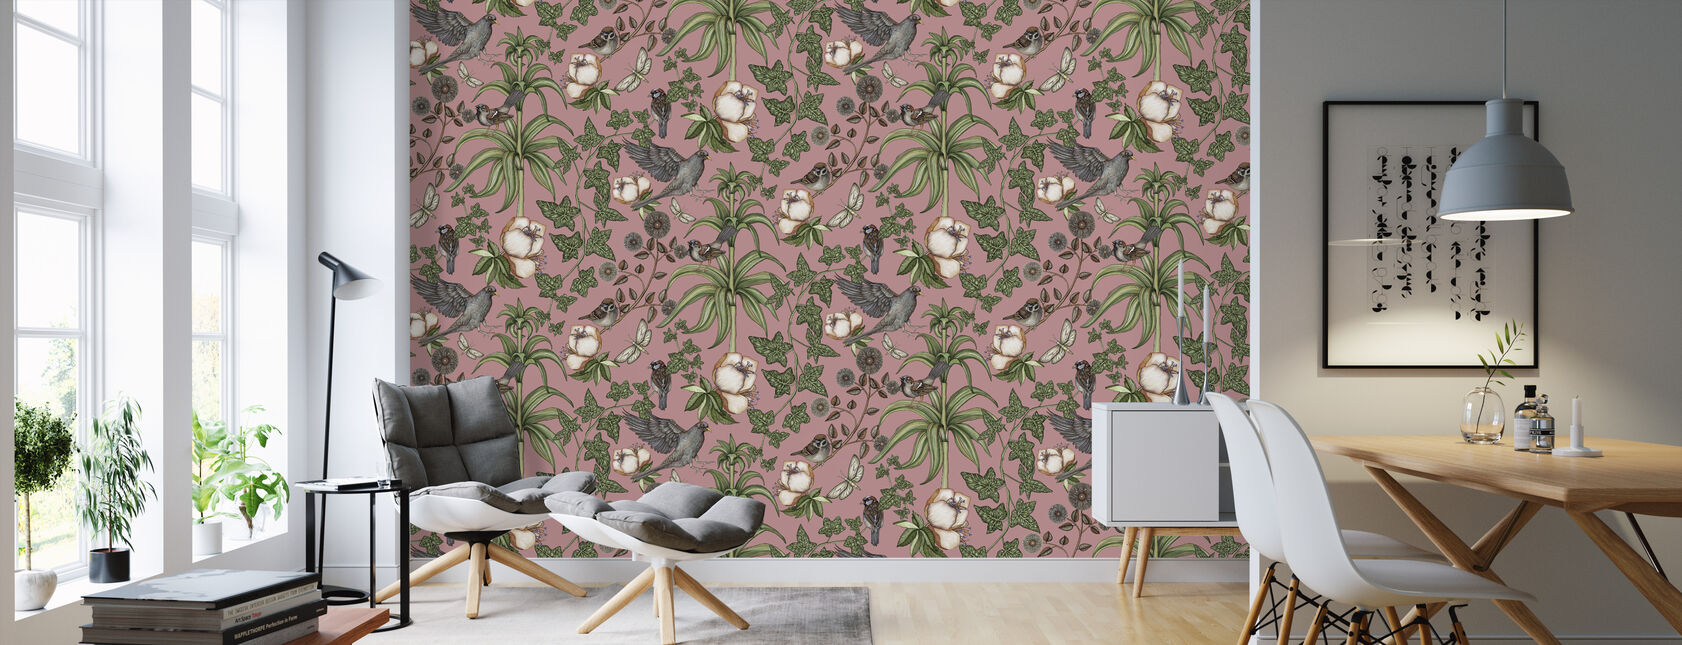 Ivy Rose - Wallpaper - Living Room